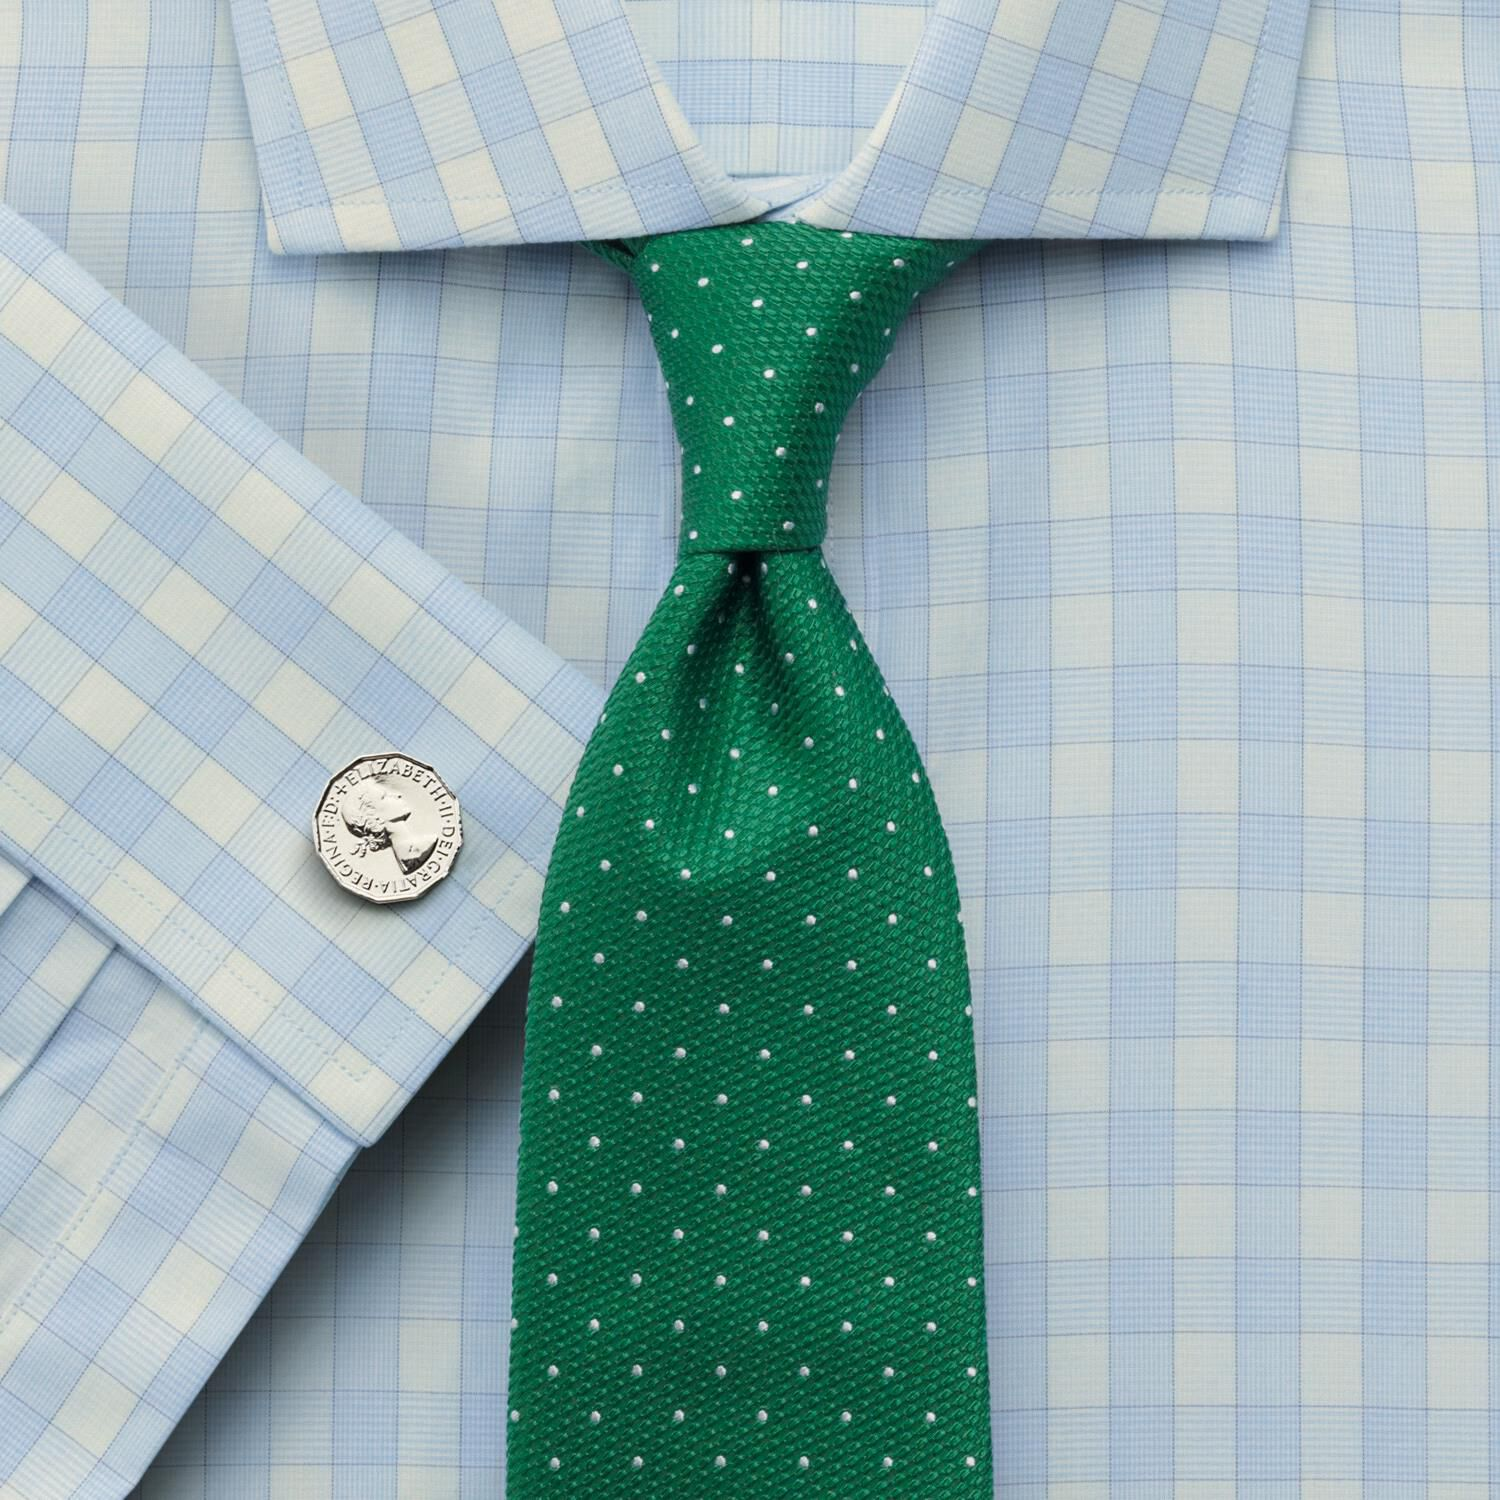 Classic Fit Cutaway Collar City Gingham Green Cotton Formal Shirt Double Cuff Size 15.5/36 by Charle